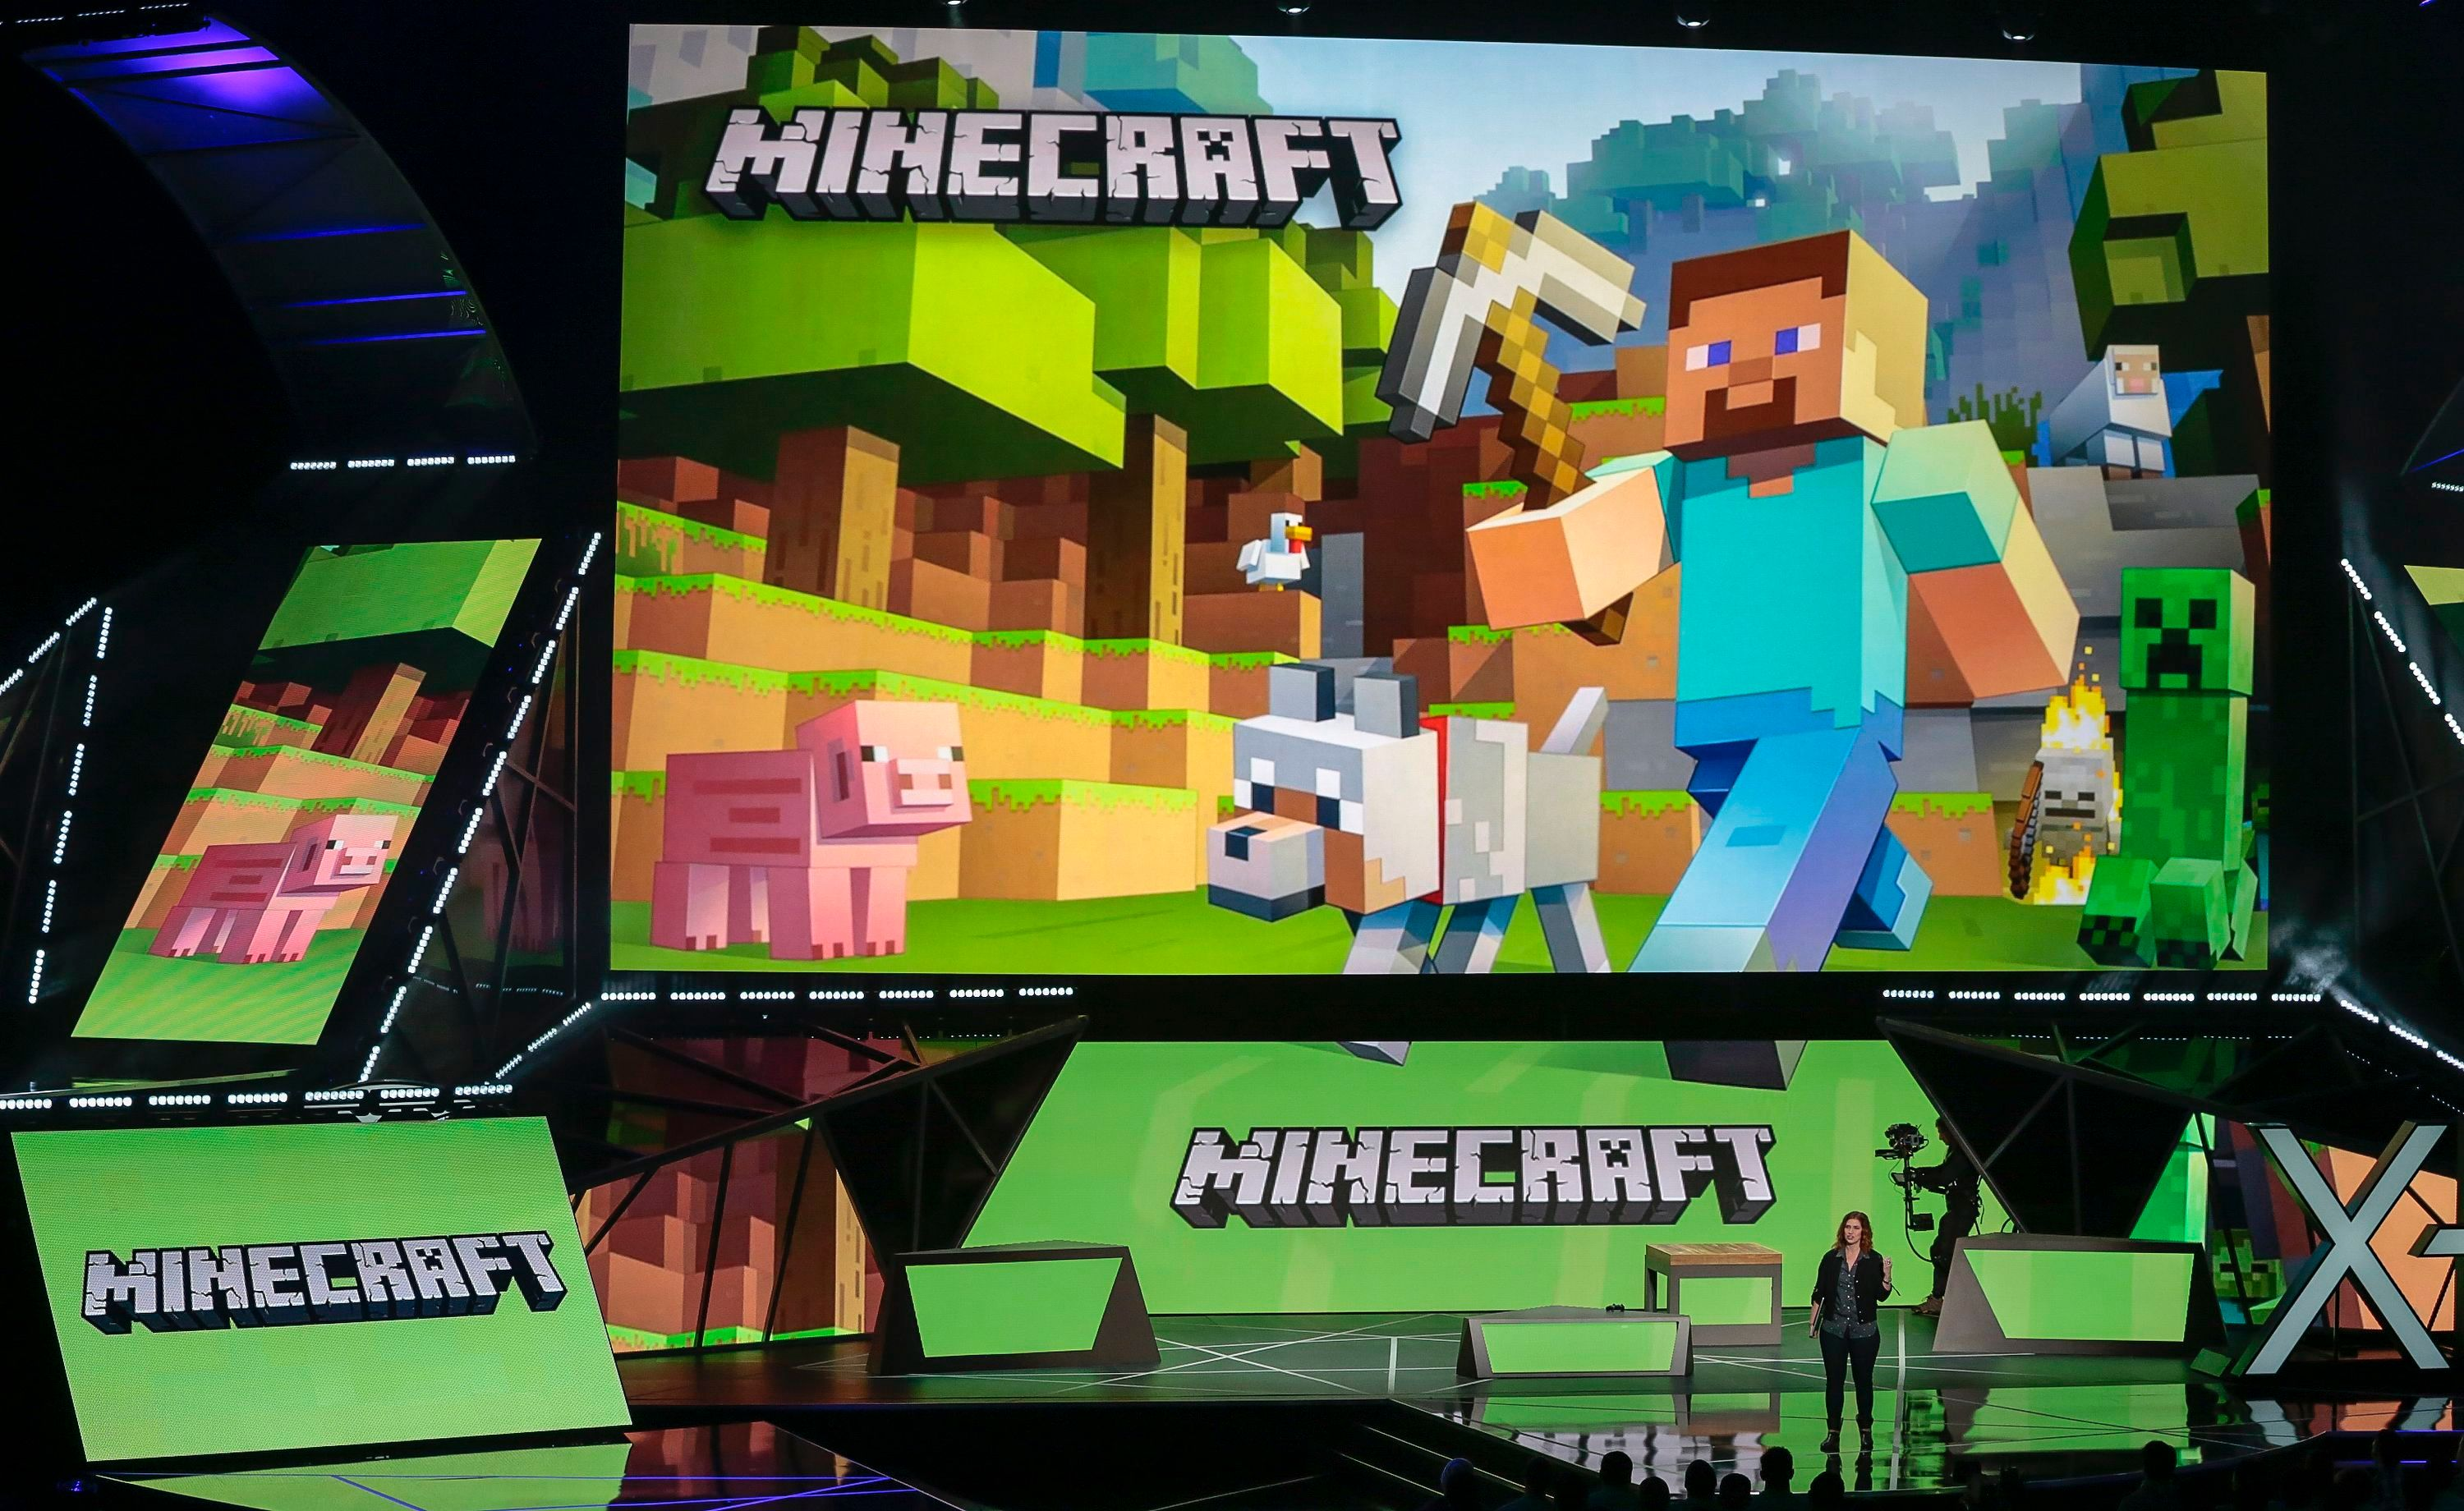 Netflix Games? Minecraft, Stranger Things Games are Coming